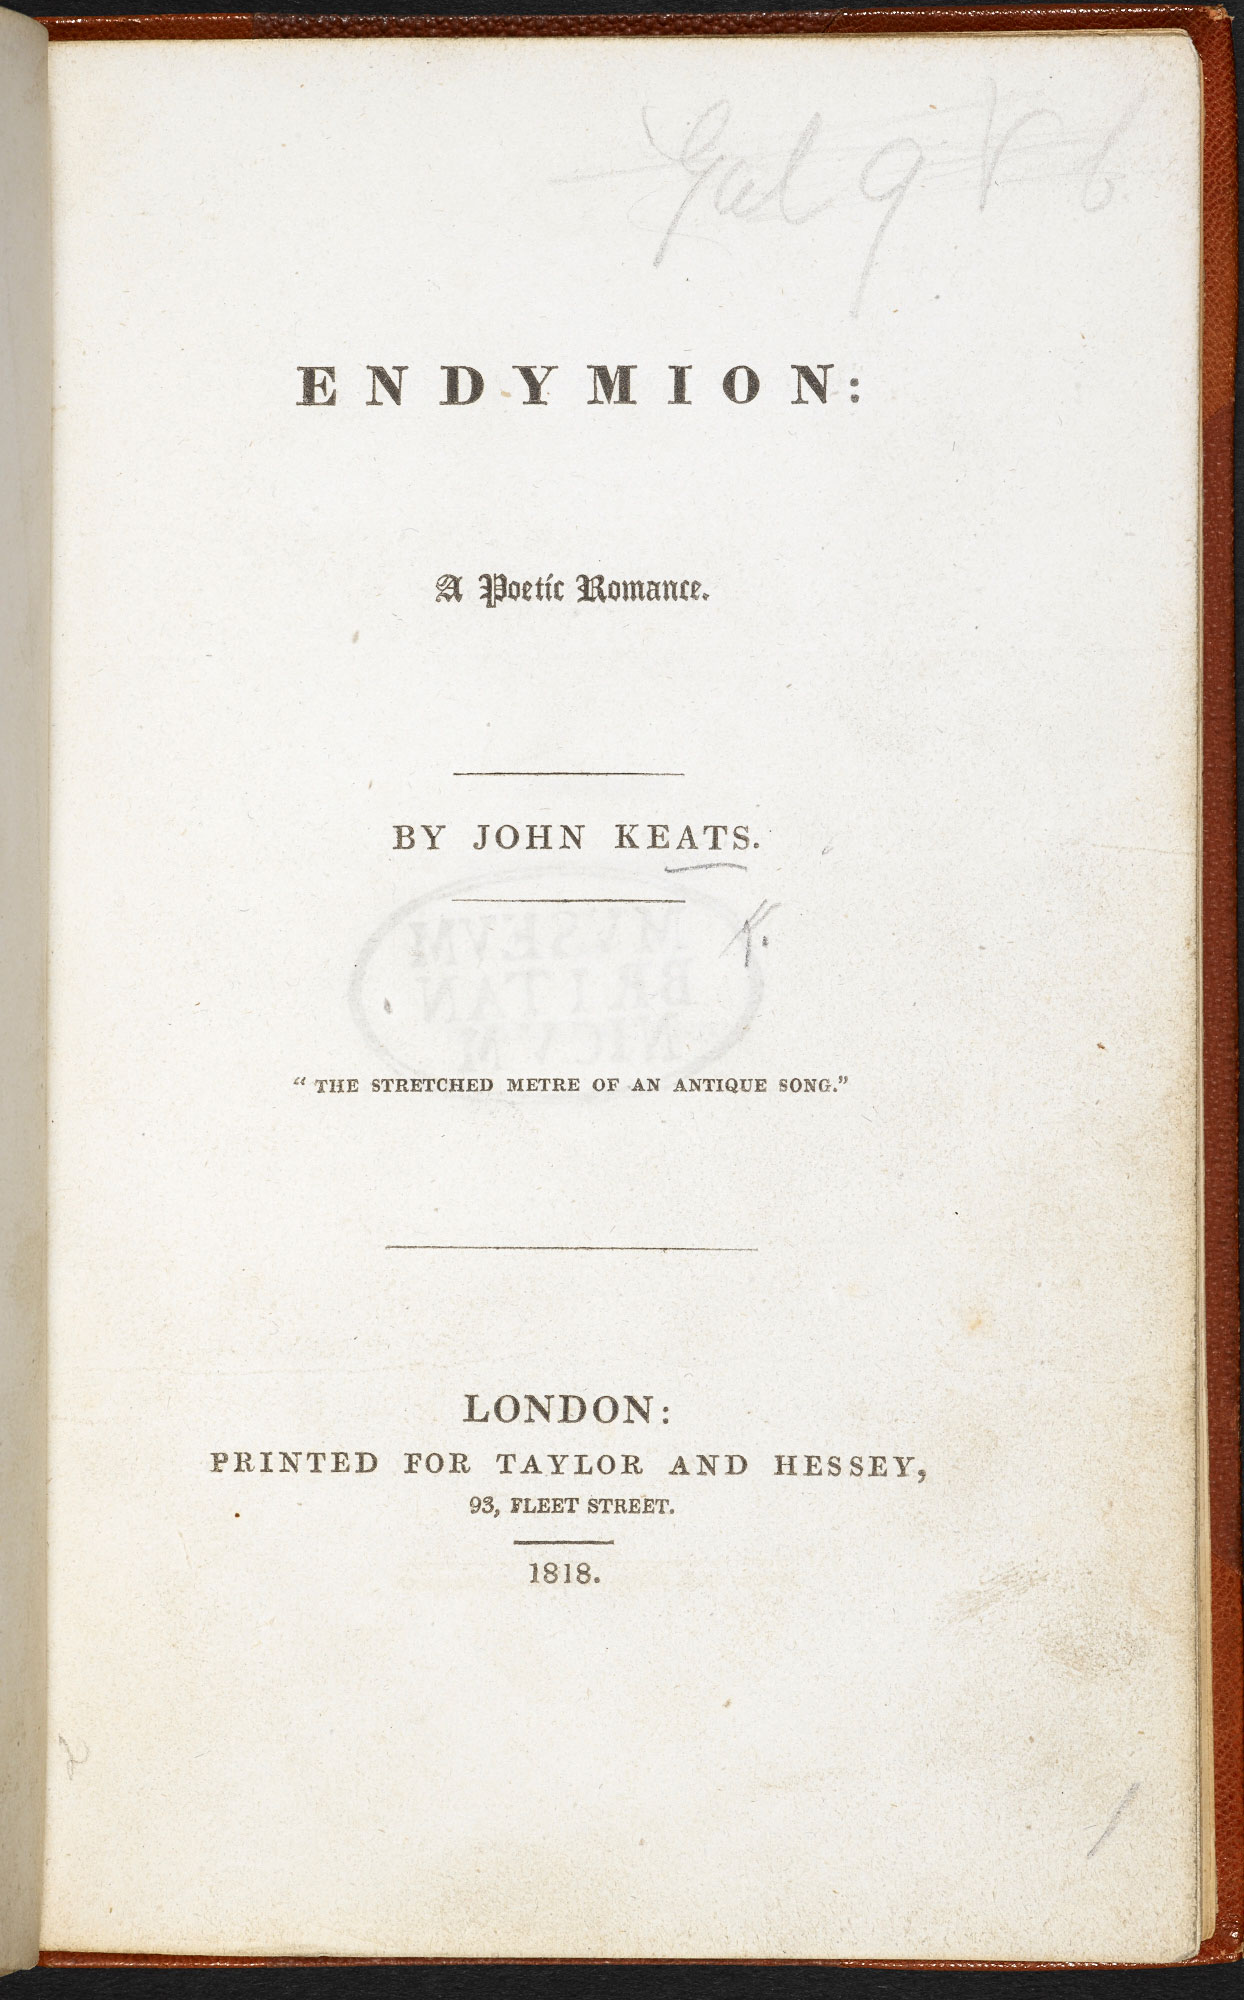 First edition of Keats's Endymion